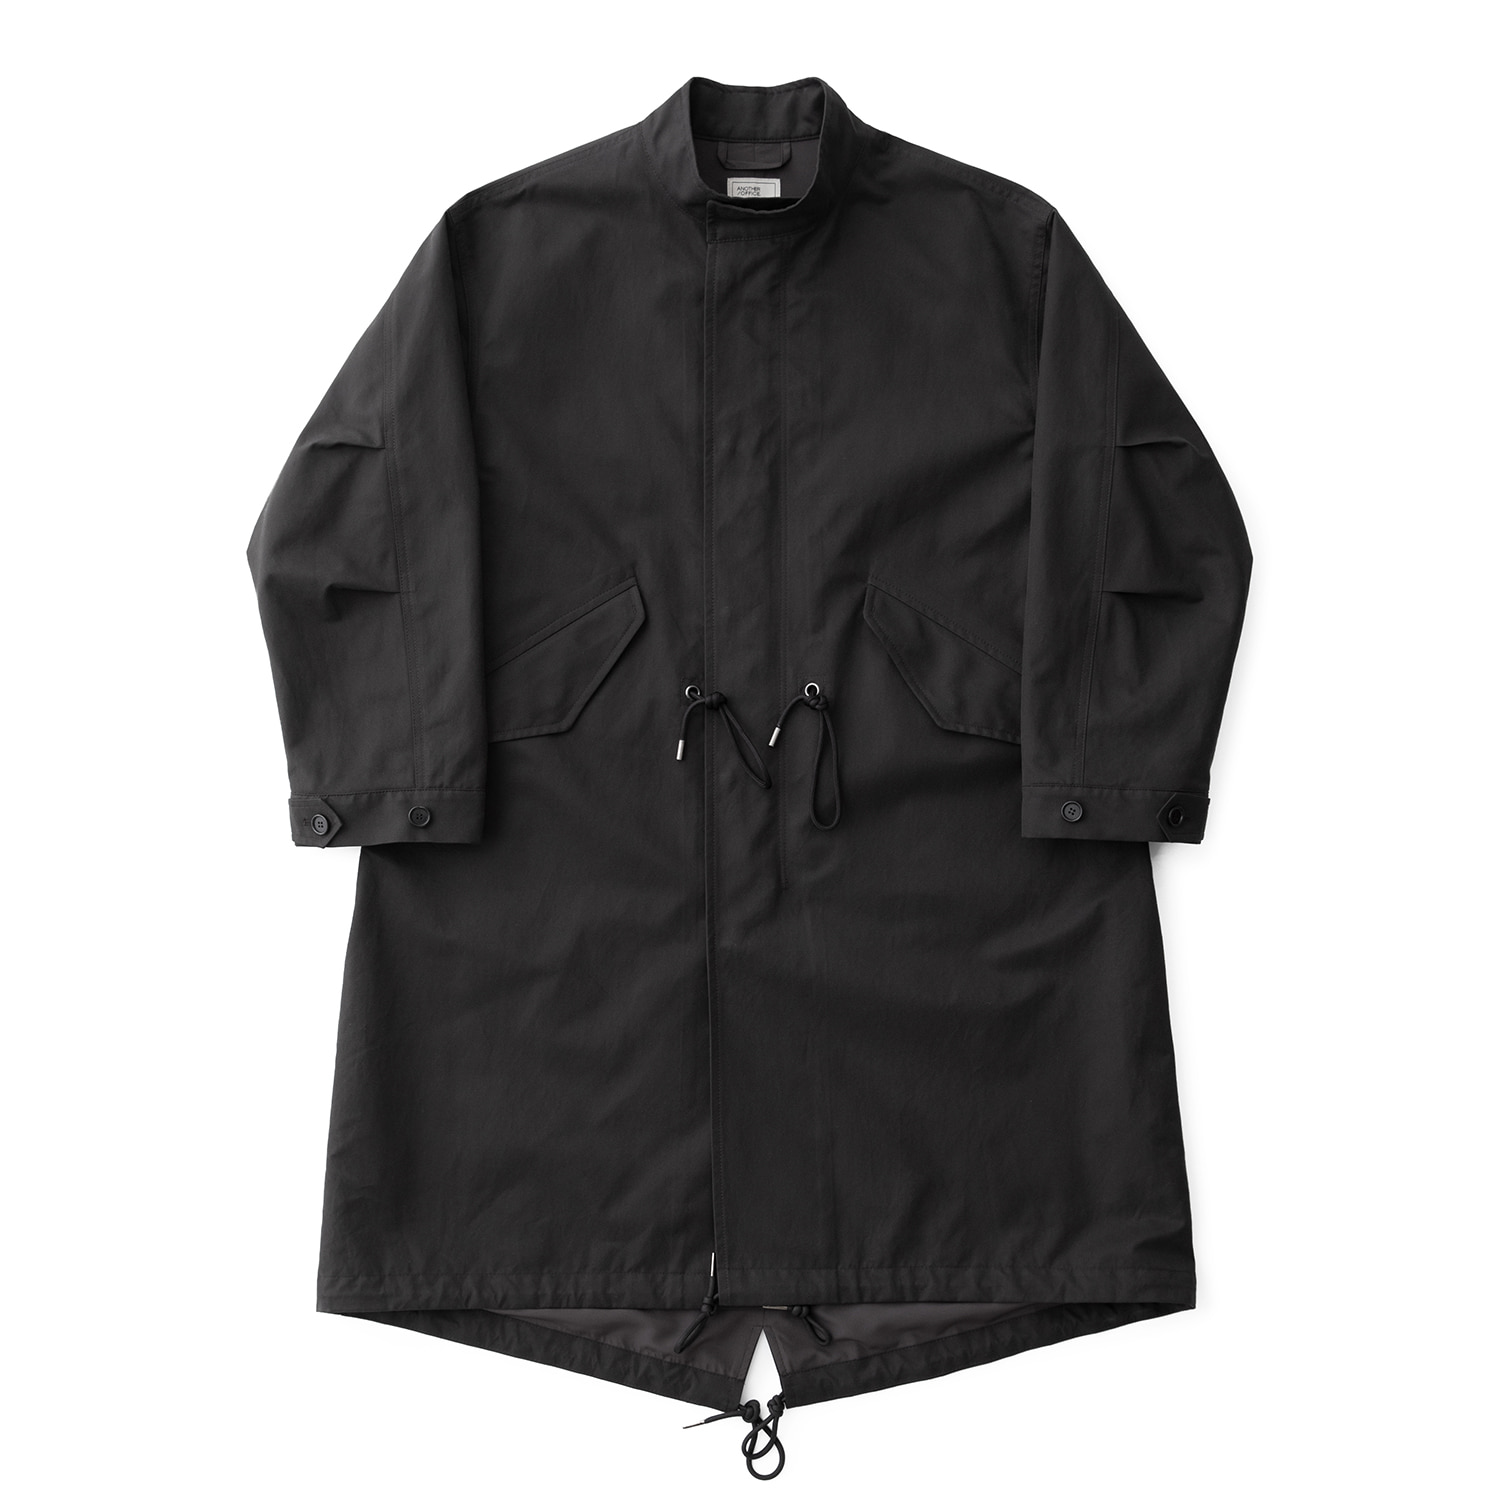 21SS Legacy M65 Parka (Faded Black)